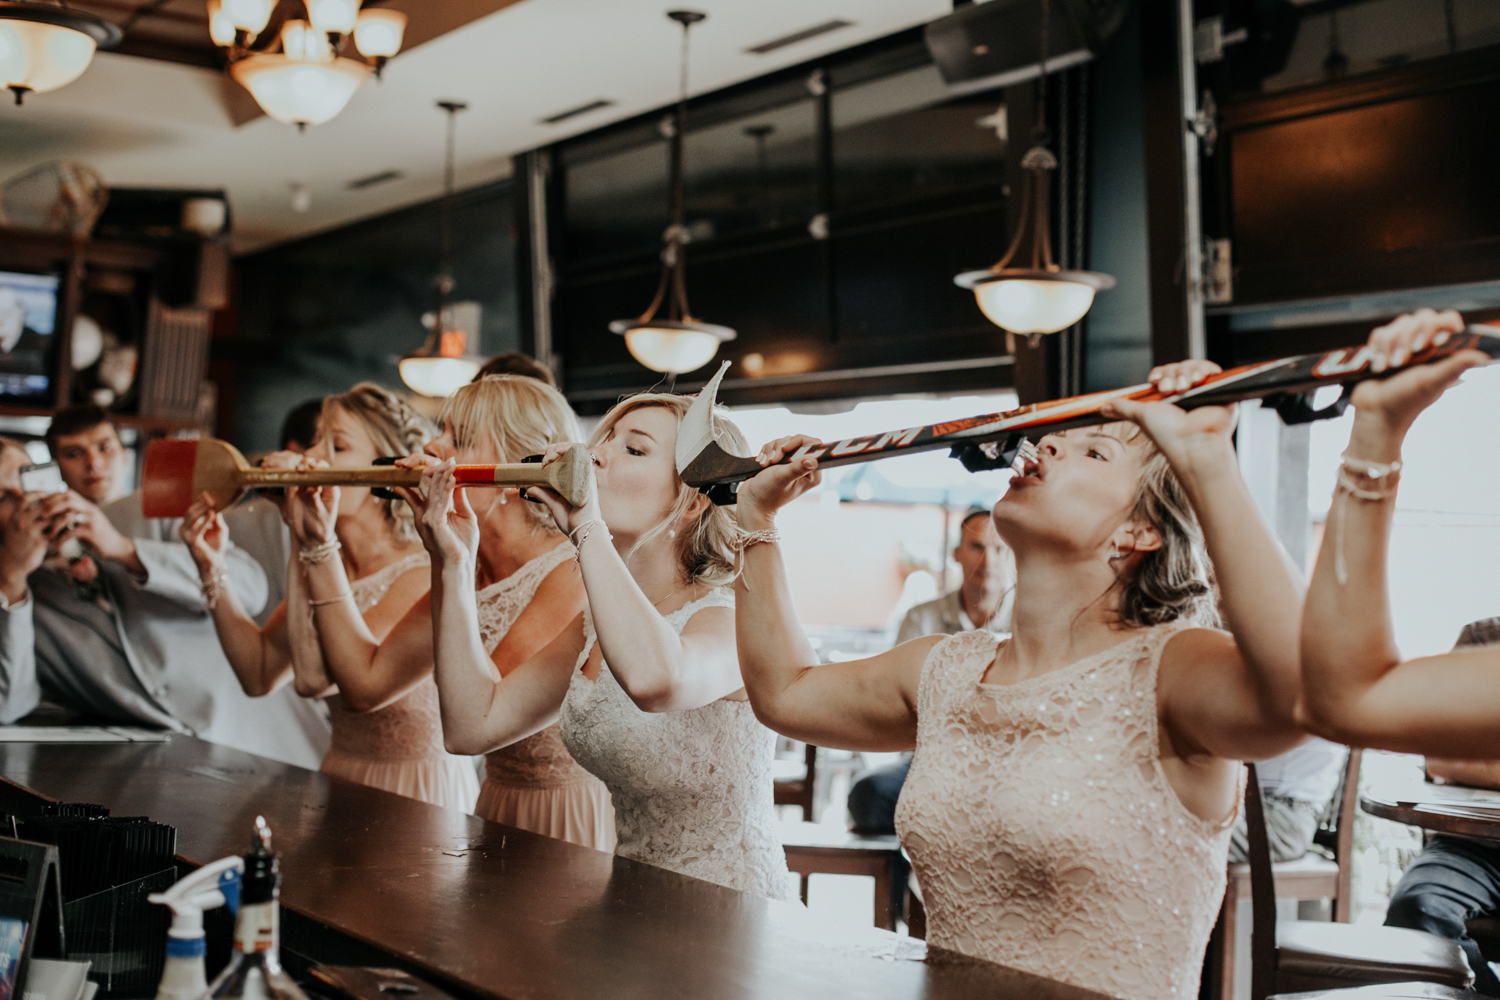 hudsons-tap-house-lethbridge-love-and-be-loved-photography-wedding-image-picture-photo-7.jpg